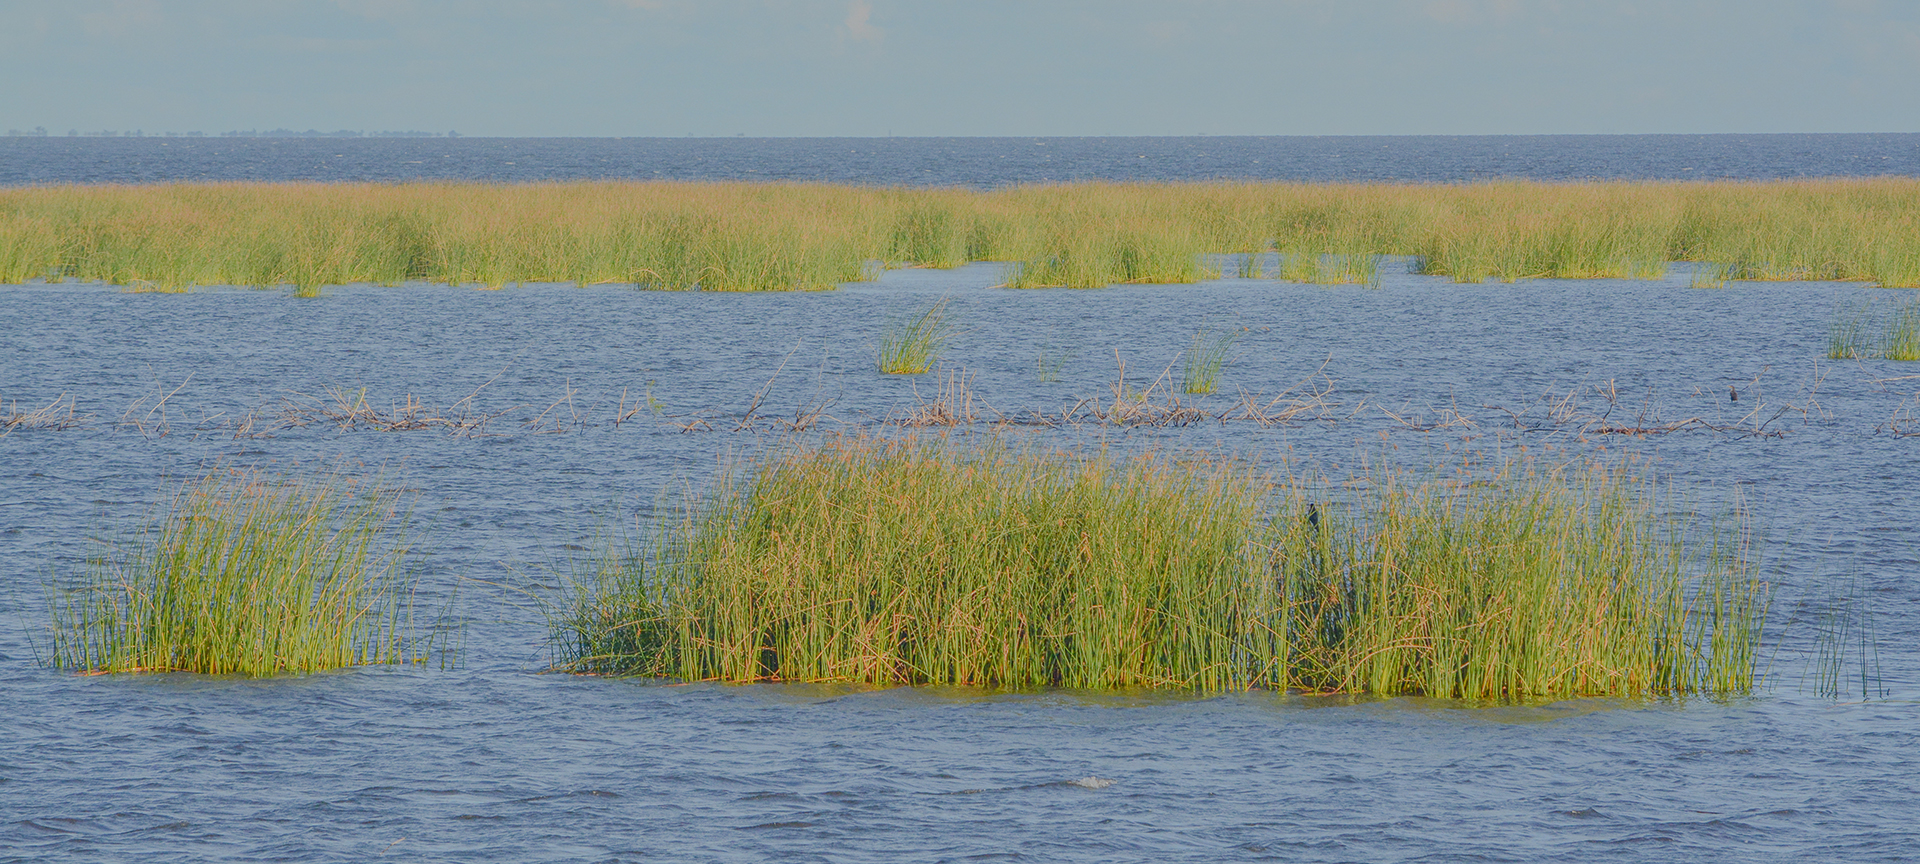 Lake Okeechobee also known as Florida's Inland Sea, is the largest freshwater lake in the state of Florida. Okeechobee covers 1,900 square kilomtres and is exceptionally shallow for a lake of its size, with an average depth of only 2.7 metres. The Kissimmee River, located directly north of Lake Okeechobee, is the lake's primary source.